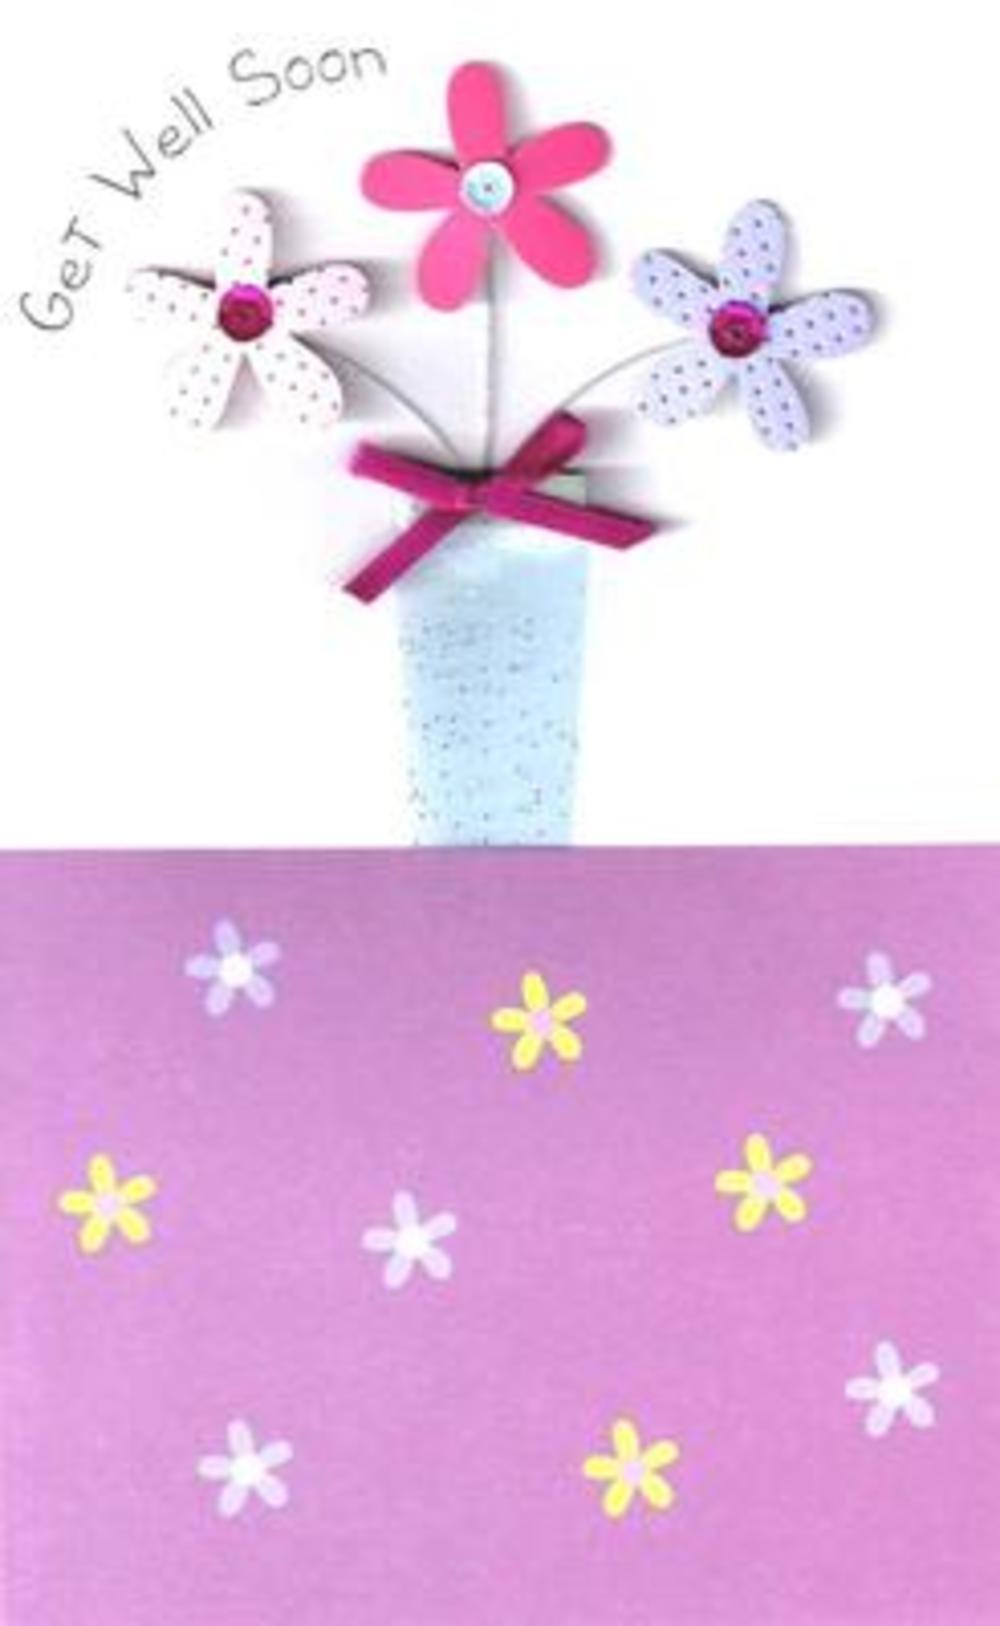 Luxury 3D Get Well Soon Cards Handfinished Embellished Greeting Card